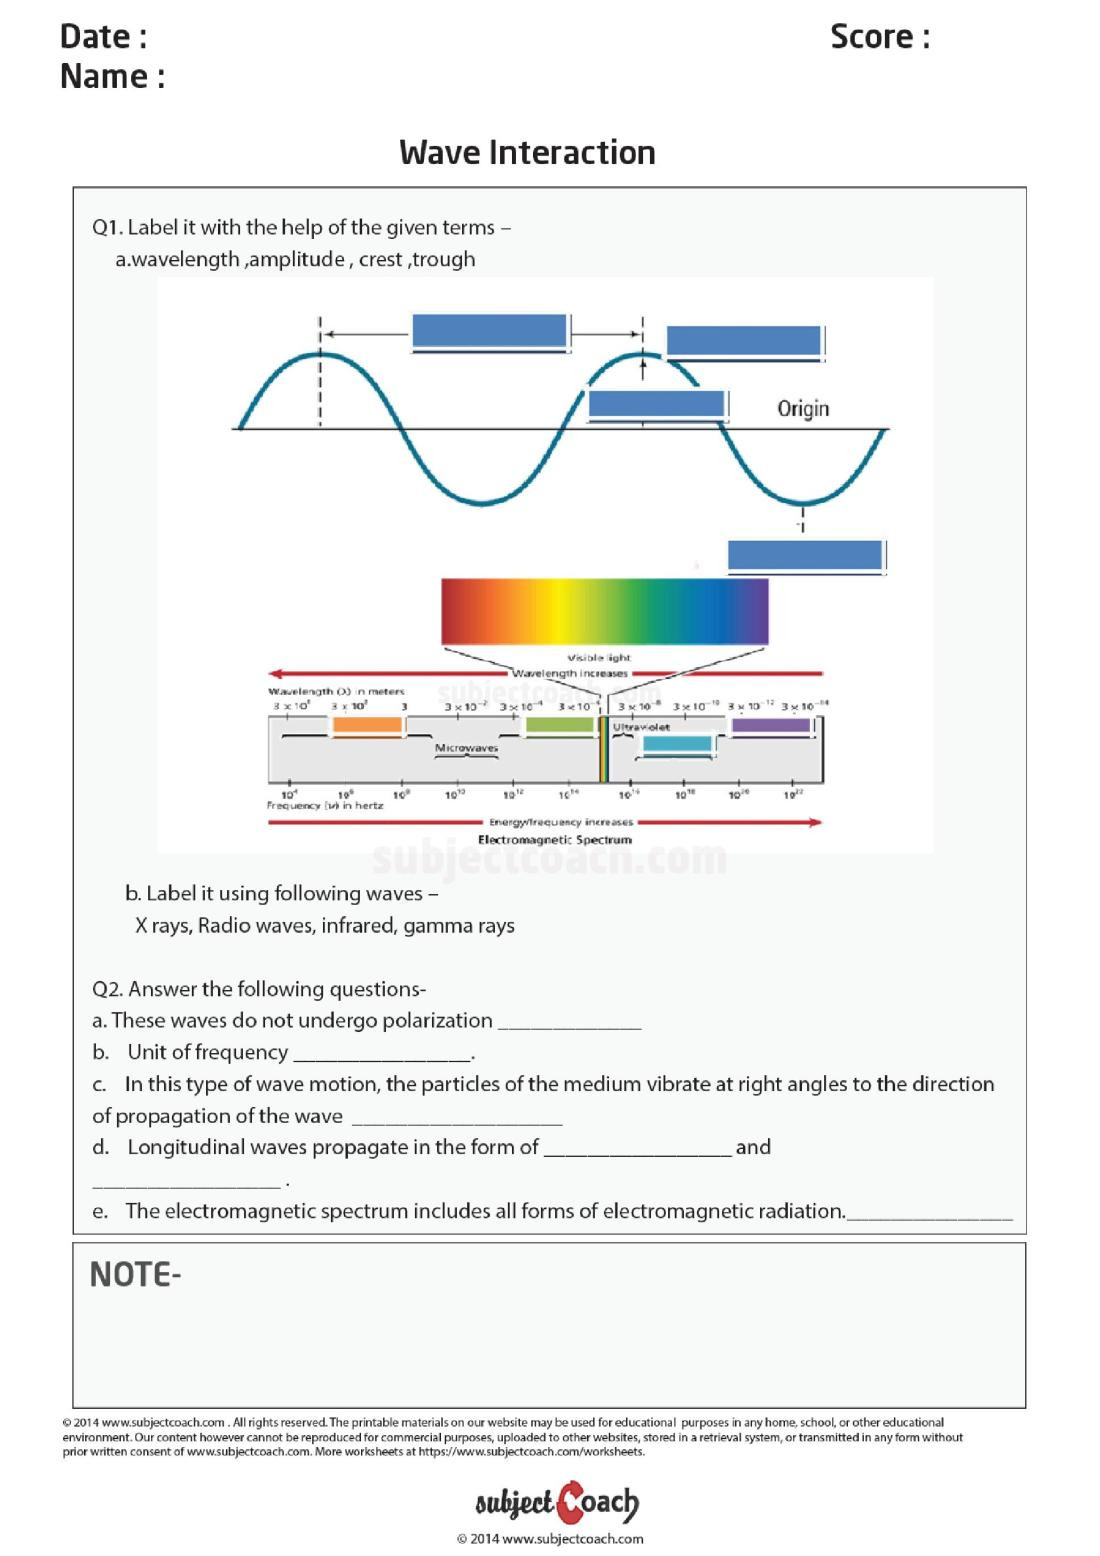 Science 7th Grade Worksheets Do Science Worksheets Work for 7th Graders – Naplan Blogs